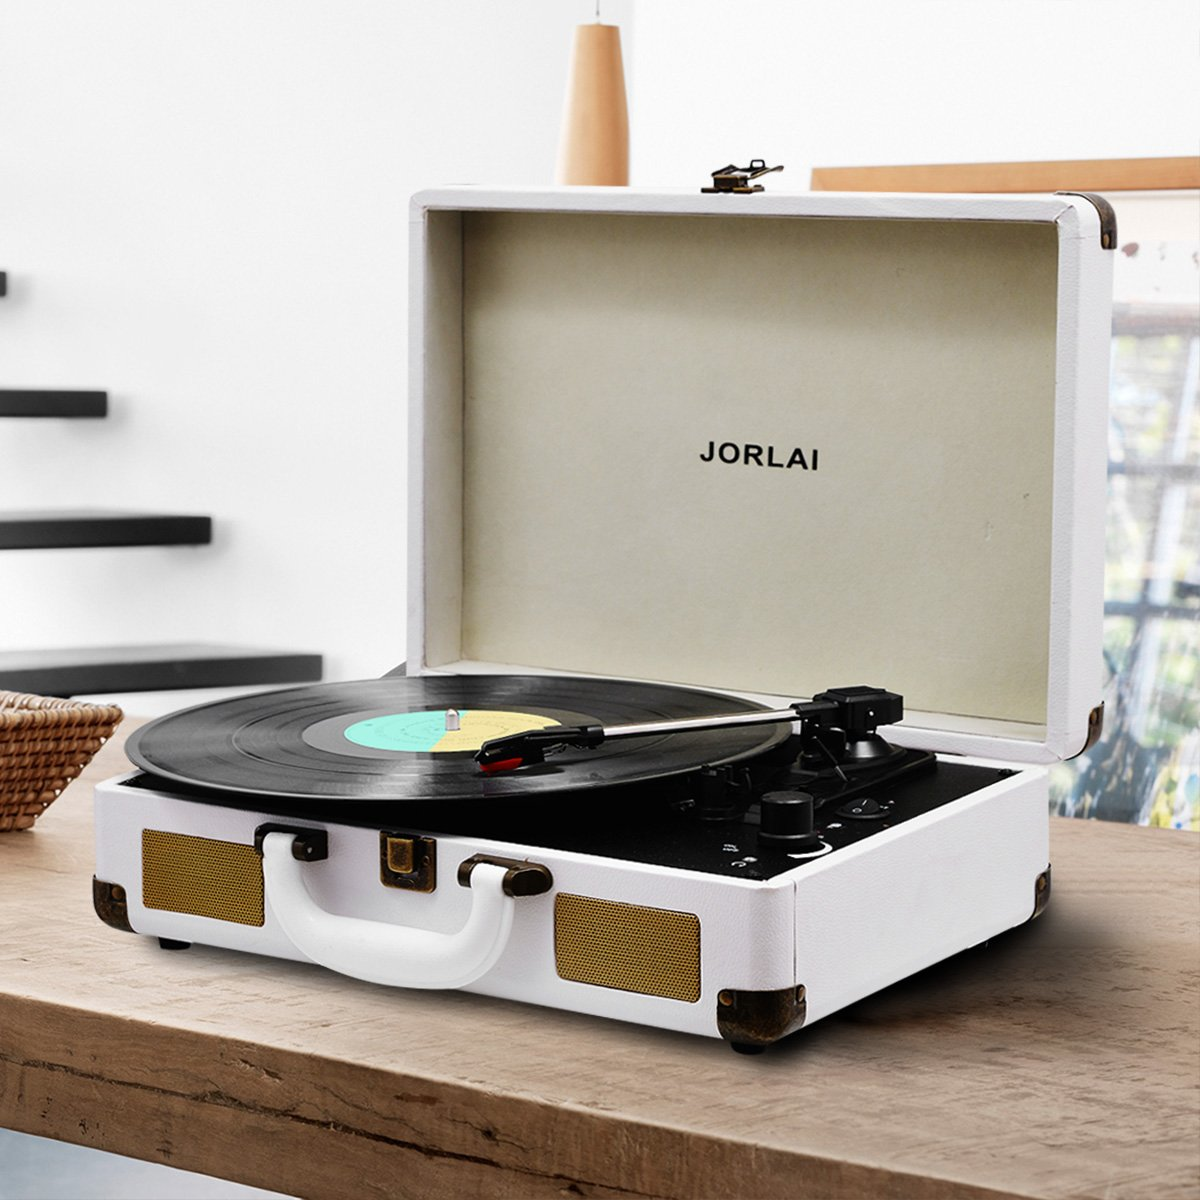 Vinyl Record Player Jorlai Turntable 3 Speed Bluetooth Speaker Marine Vm 602 Suitcase With Built In Speakers Rechargable Battery To Mp3